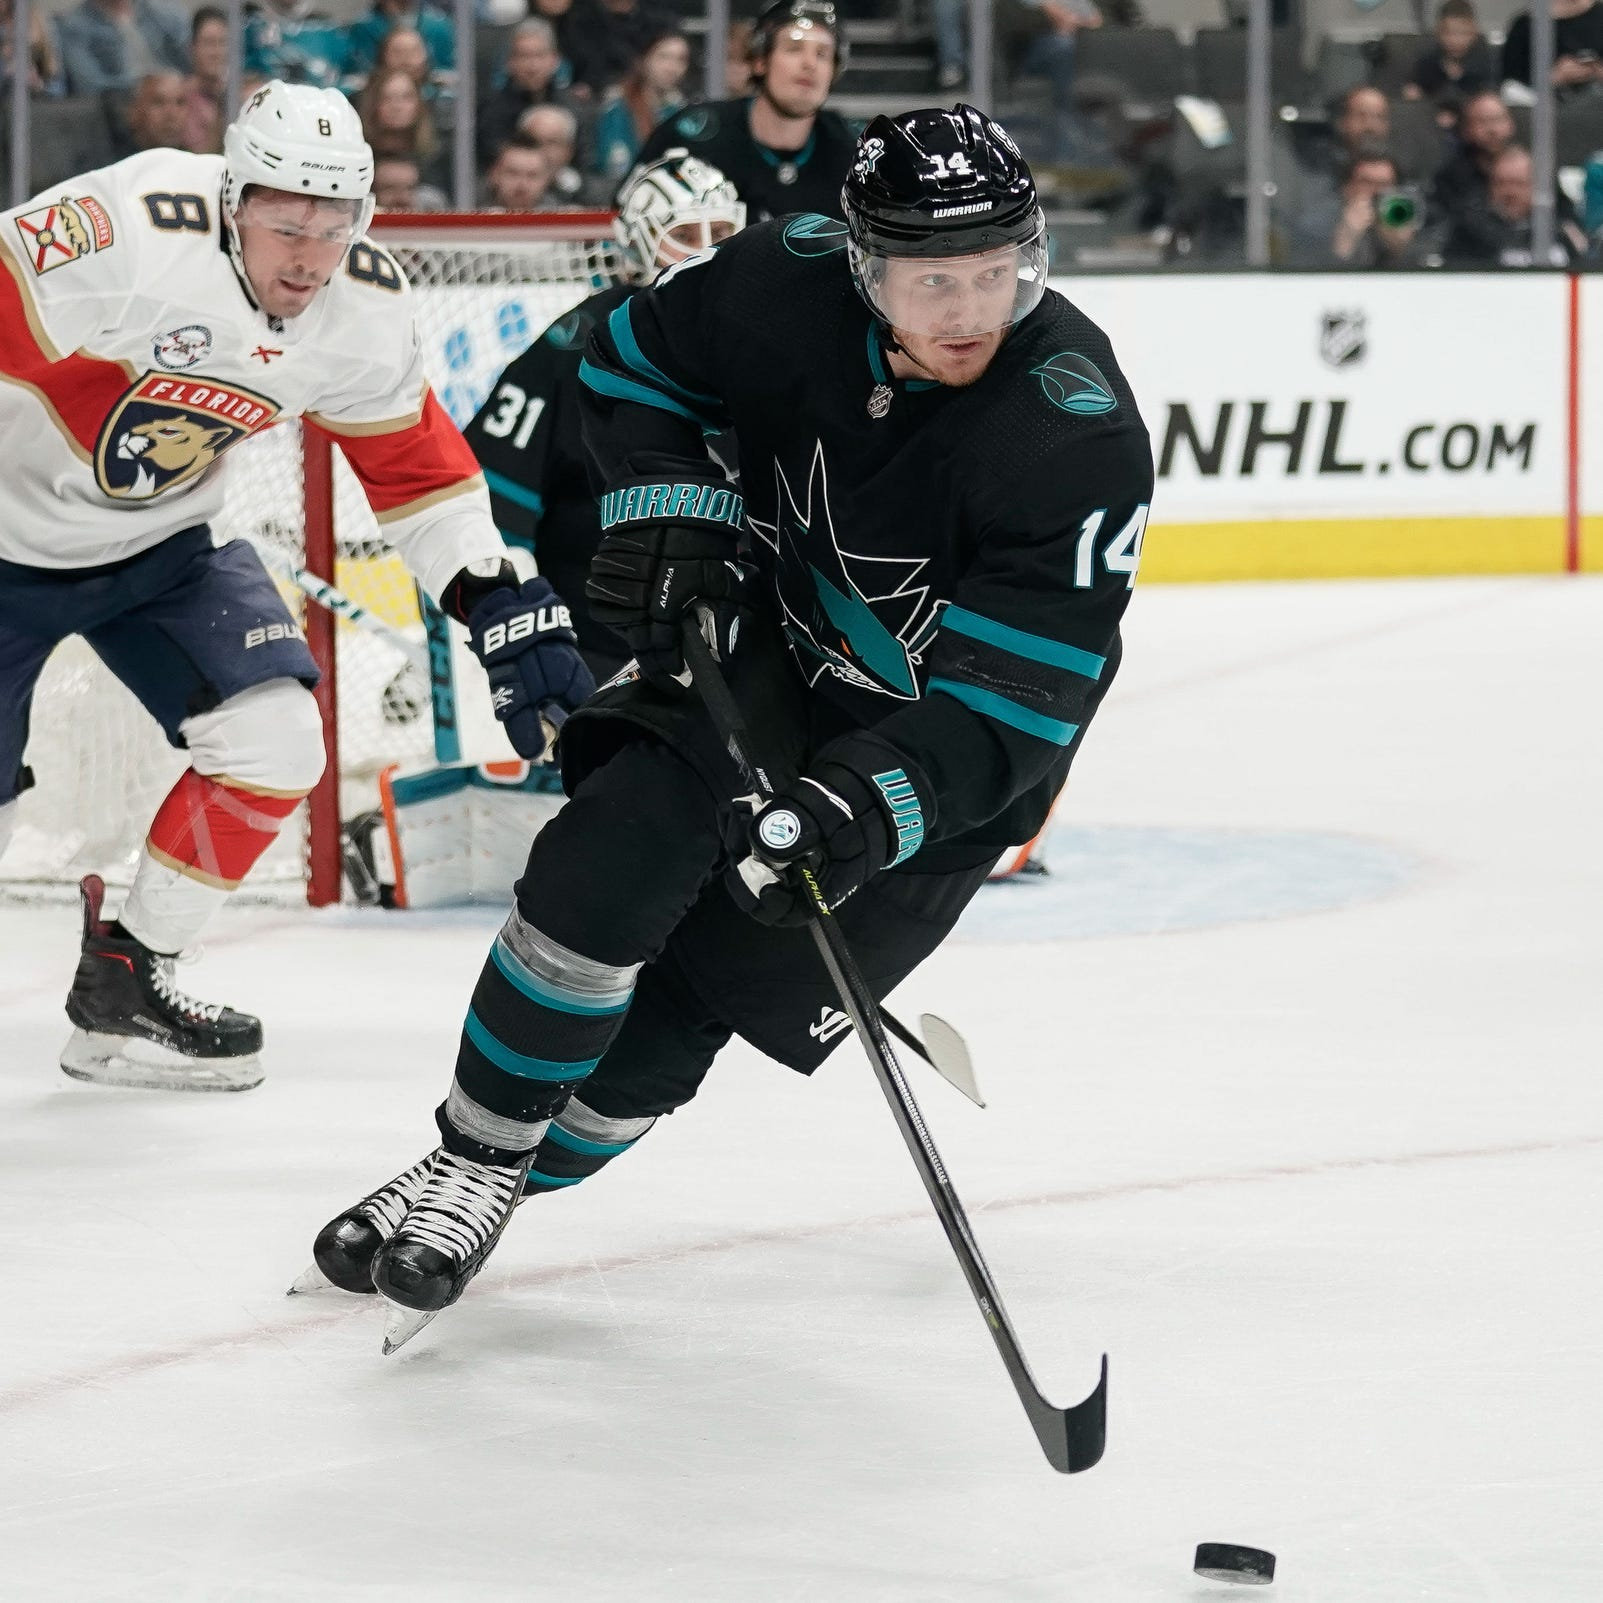 Detroit Red Wings vs. San Jose Sharks: First look at Gustav Nyquist